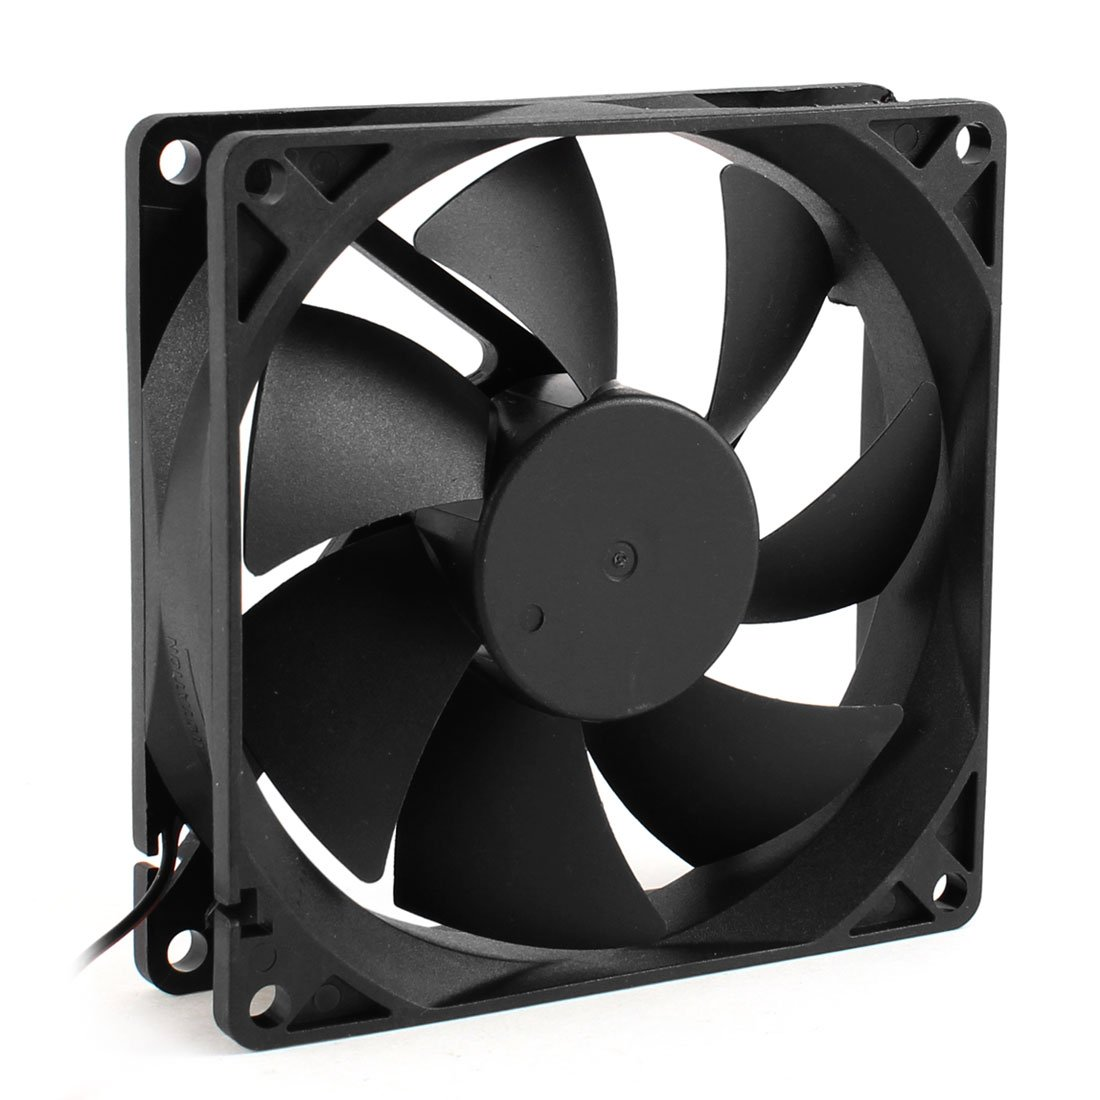 PROMOTION! Hot 92mm x 25mm 24V 2Pin Sleeve Bearing Cooling Fan for PC Case CPU Cooler promotion 92mm x 25mm dc 12v 2pin 65 01cfm computer case cpu cooler cooling fan